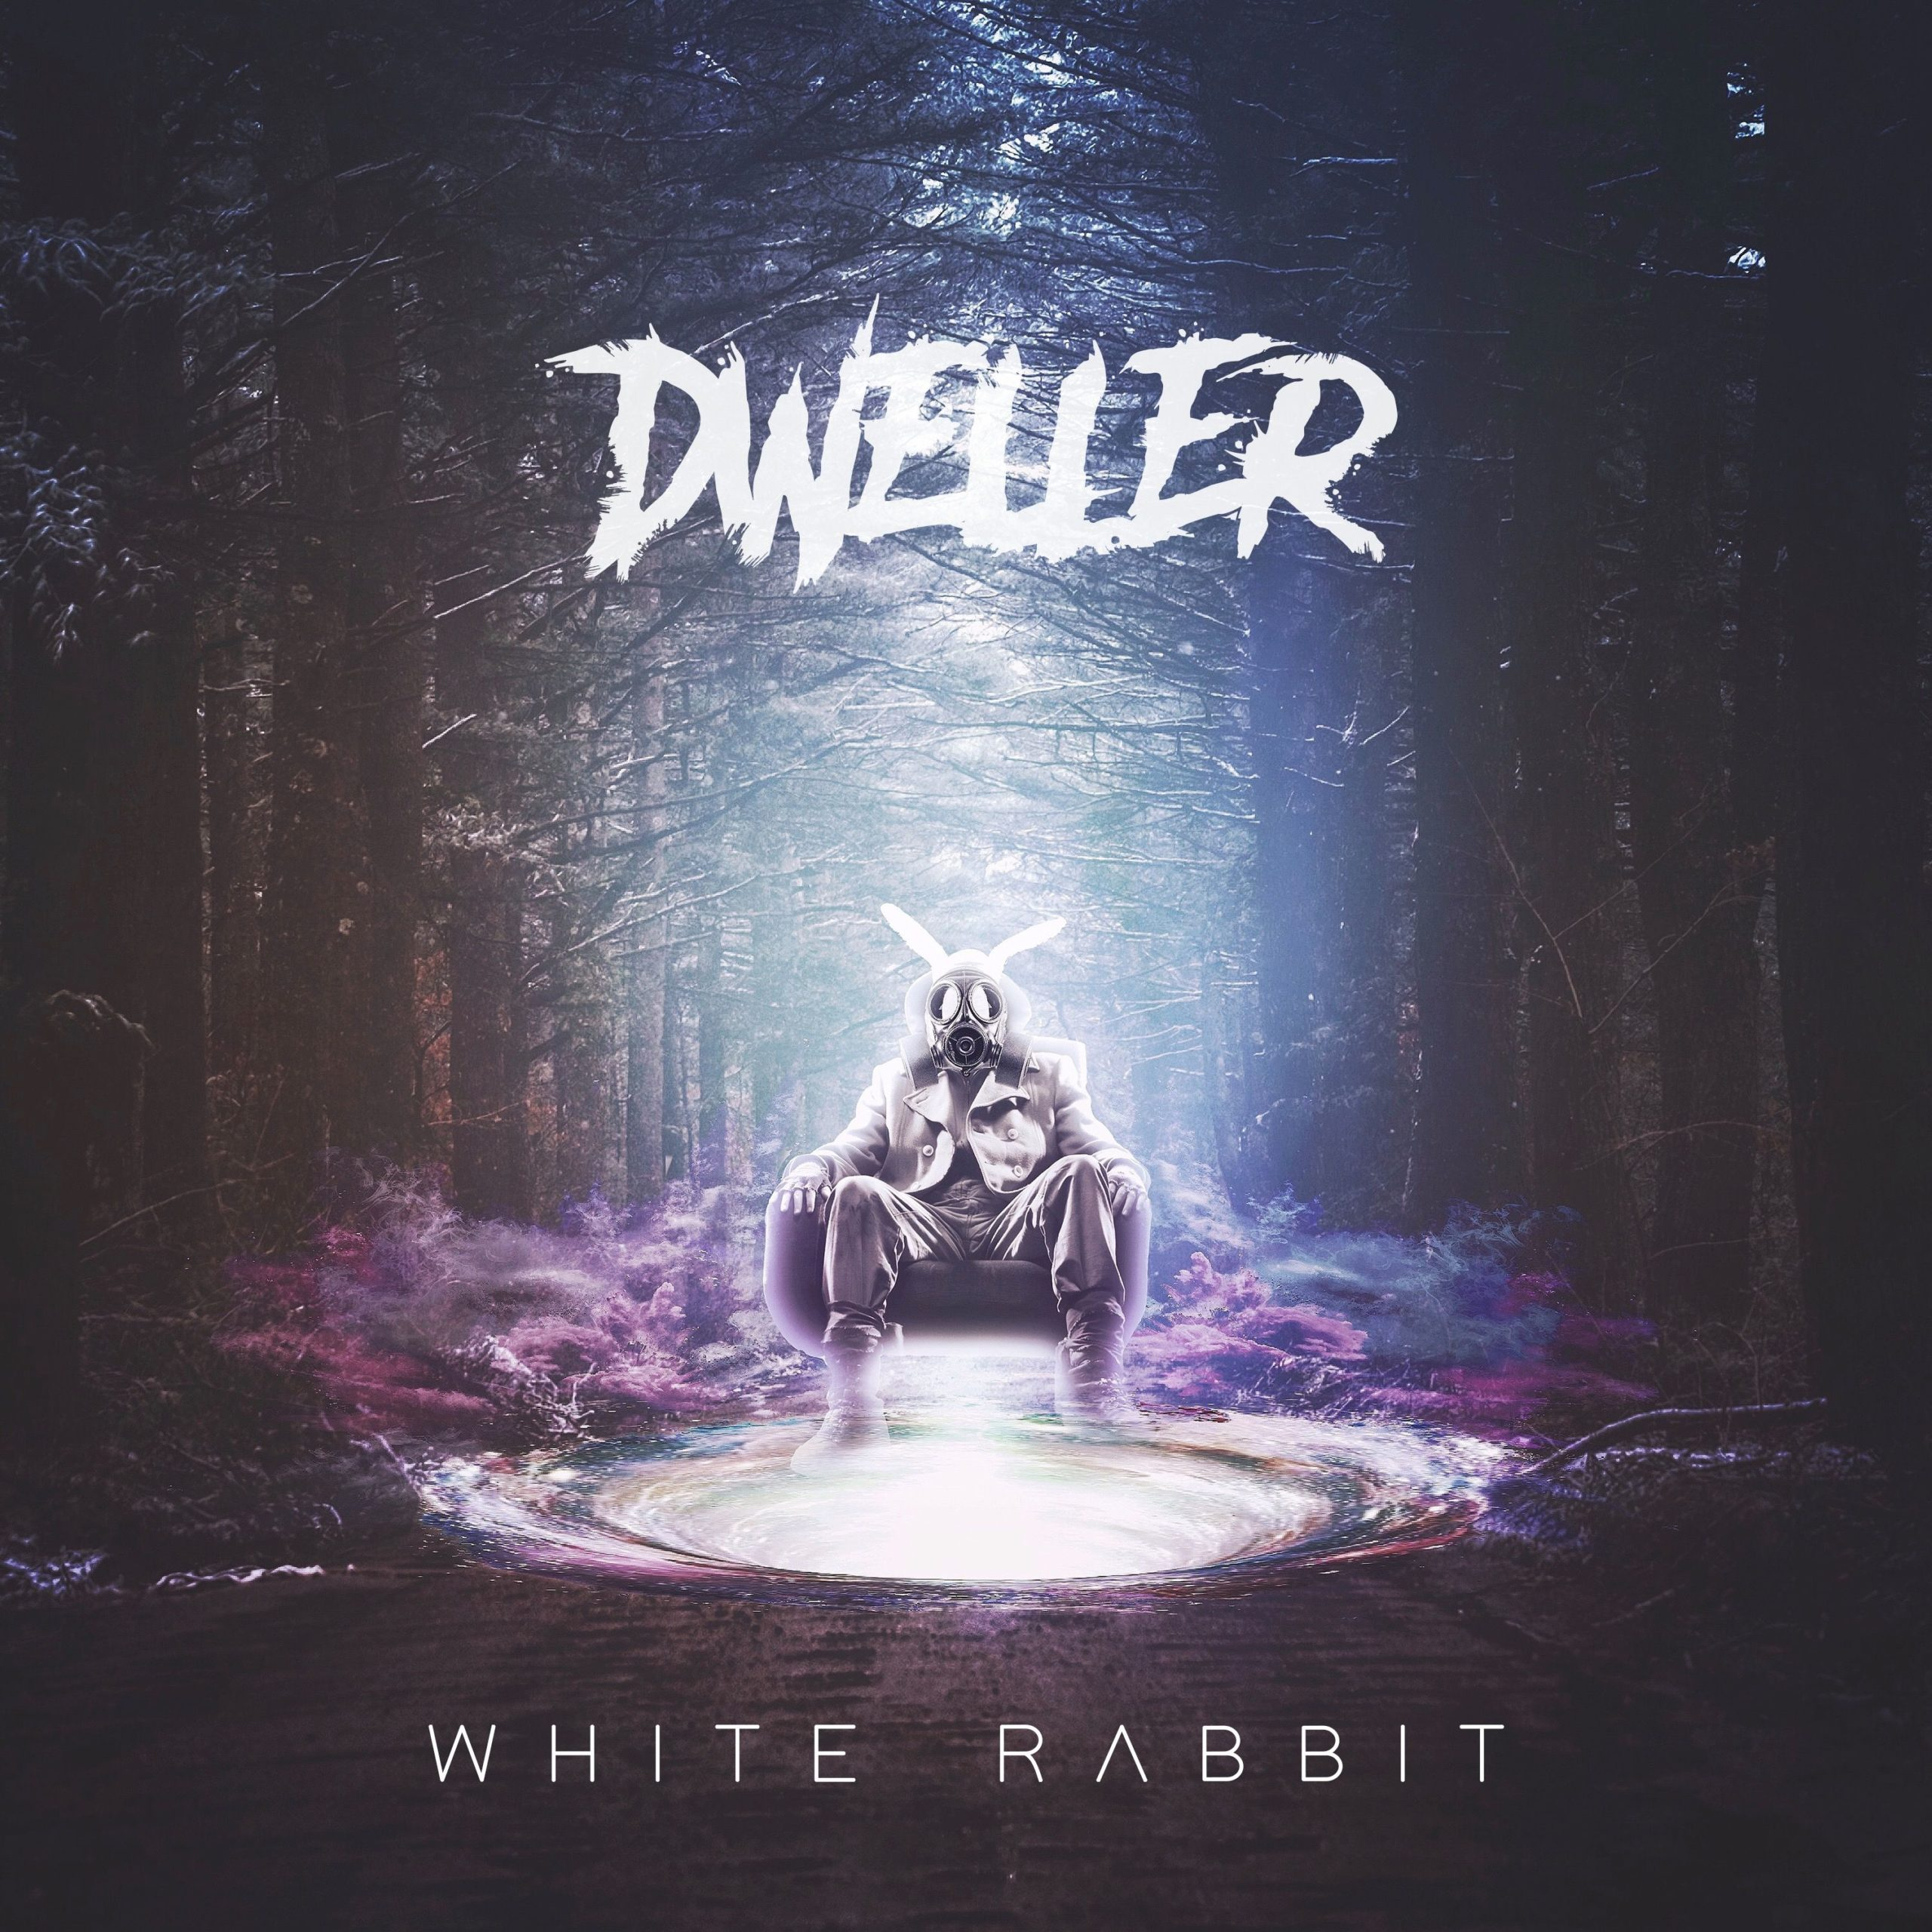 Dweller White Rabbit